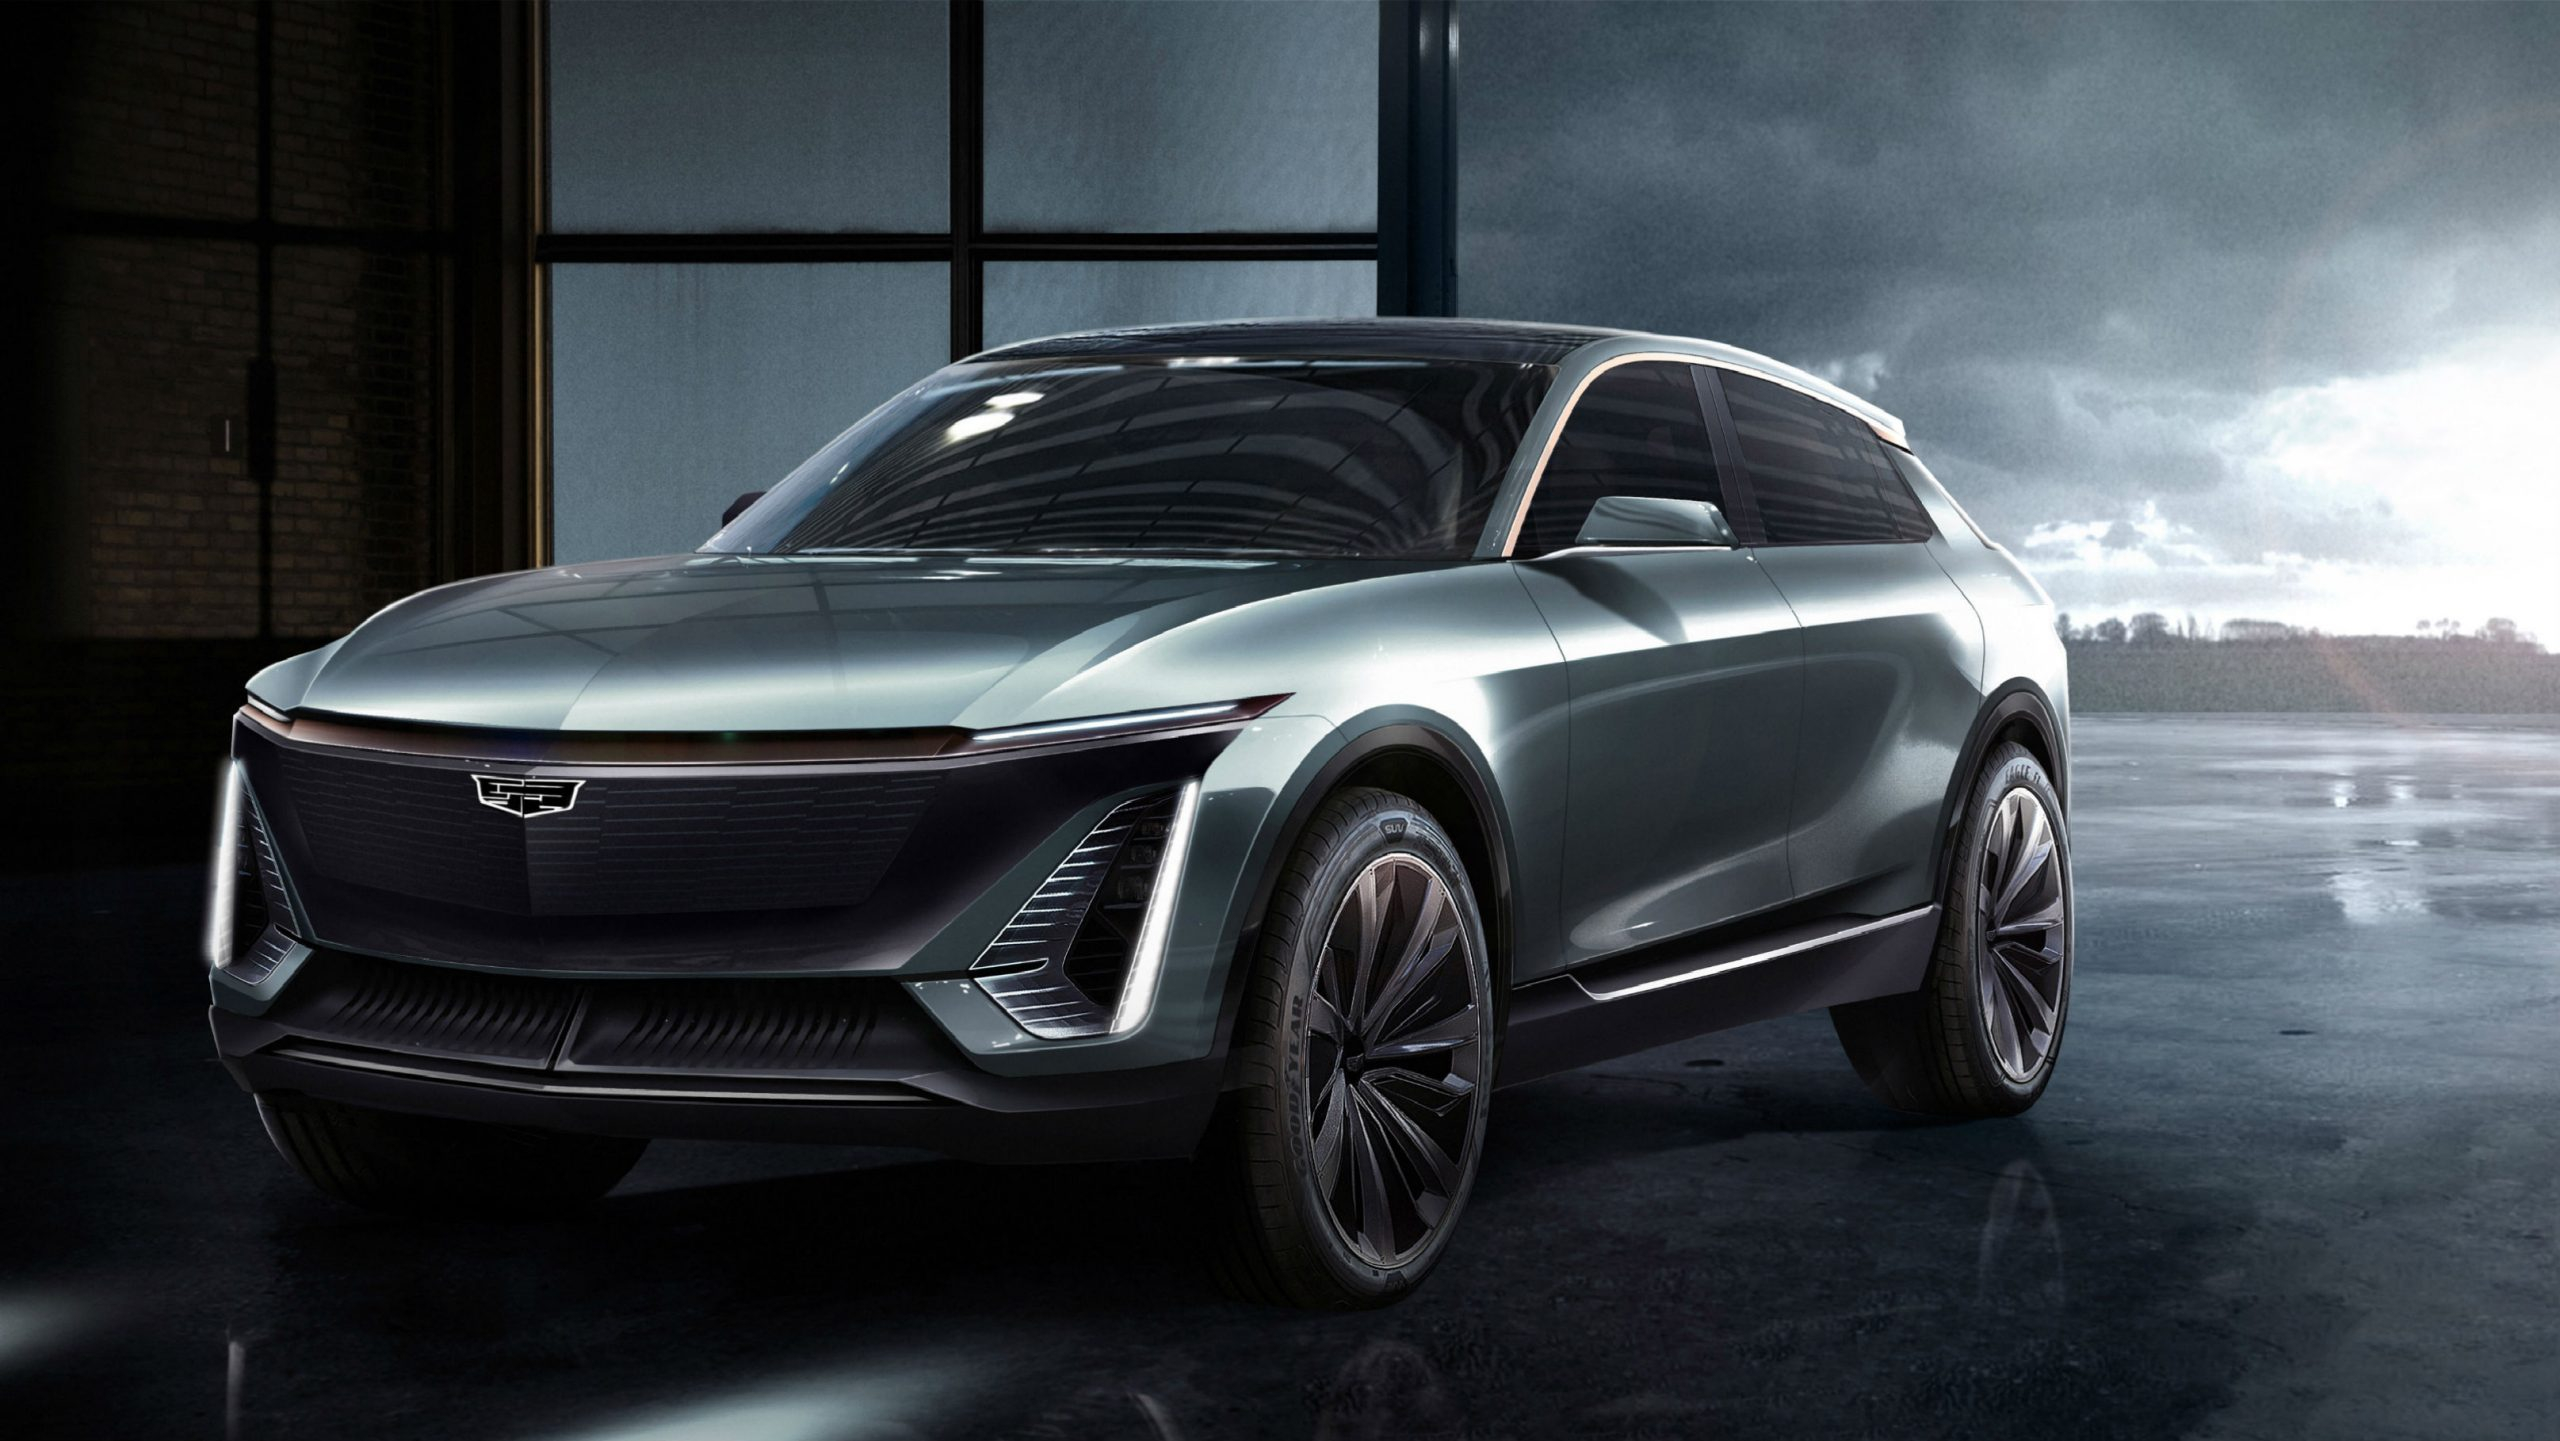 Gm Reveals 10 Evs At Its Top-Secret Design Dome – Wheels.ca 2022 Chevrolet Blazer Order Guide, Offers, Price